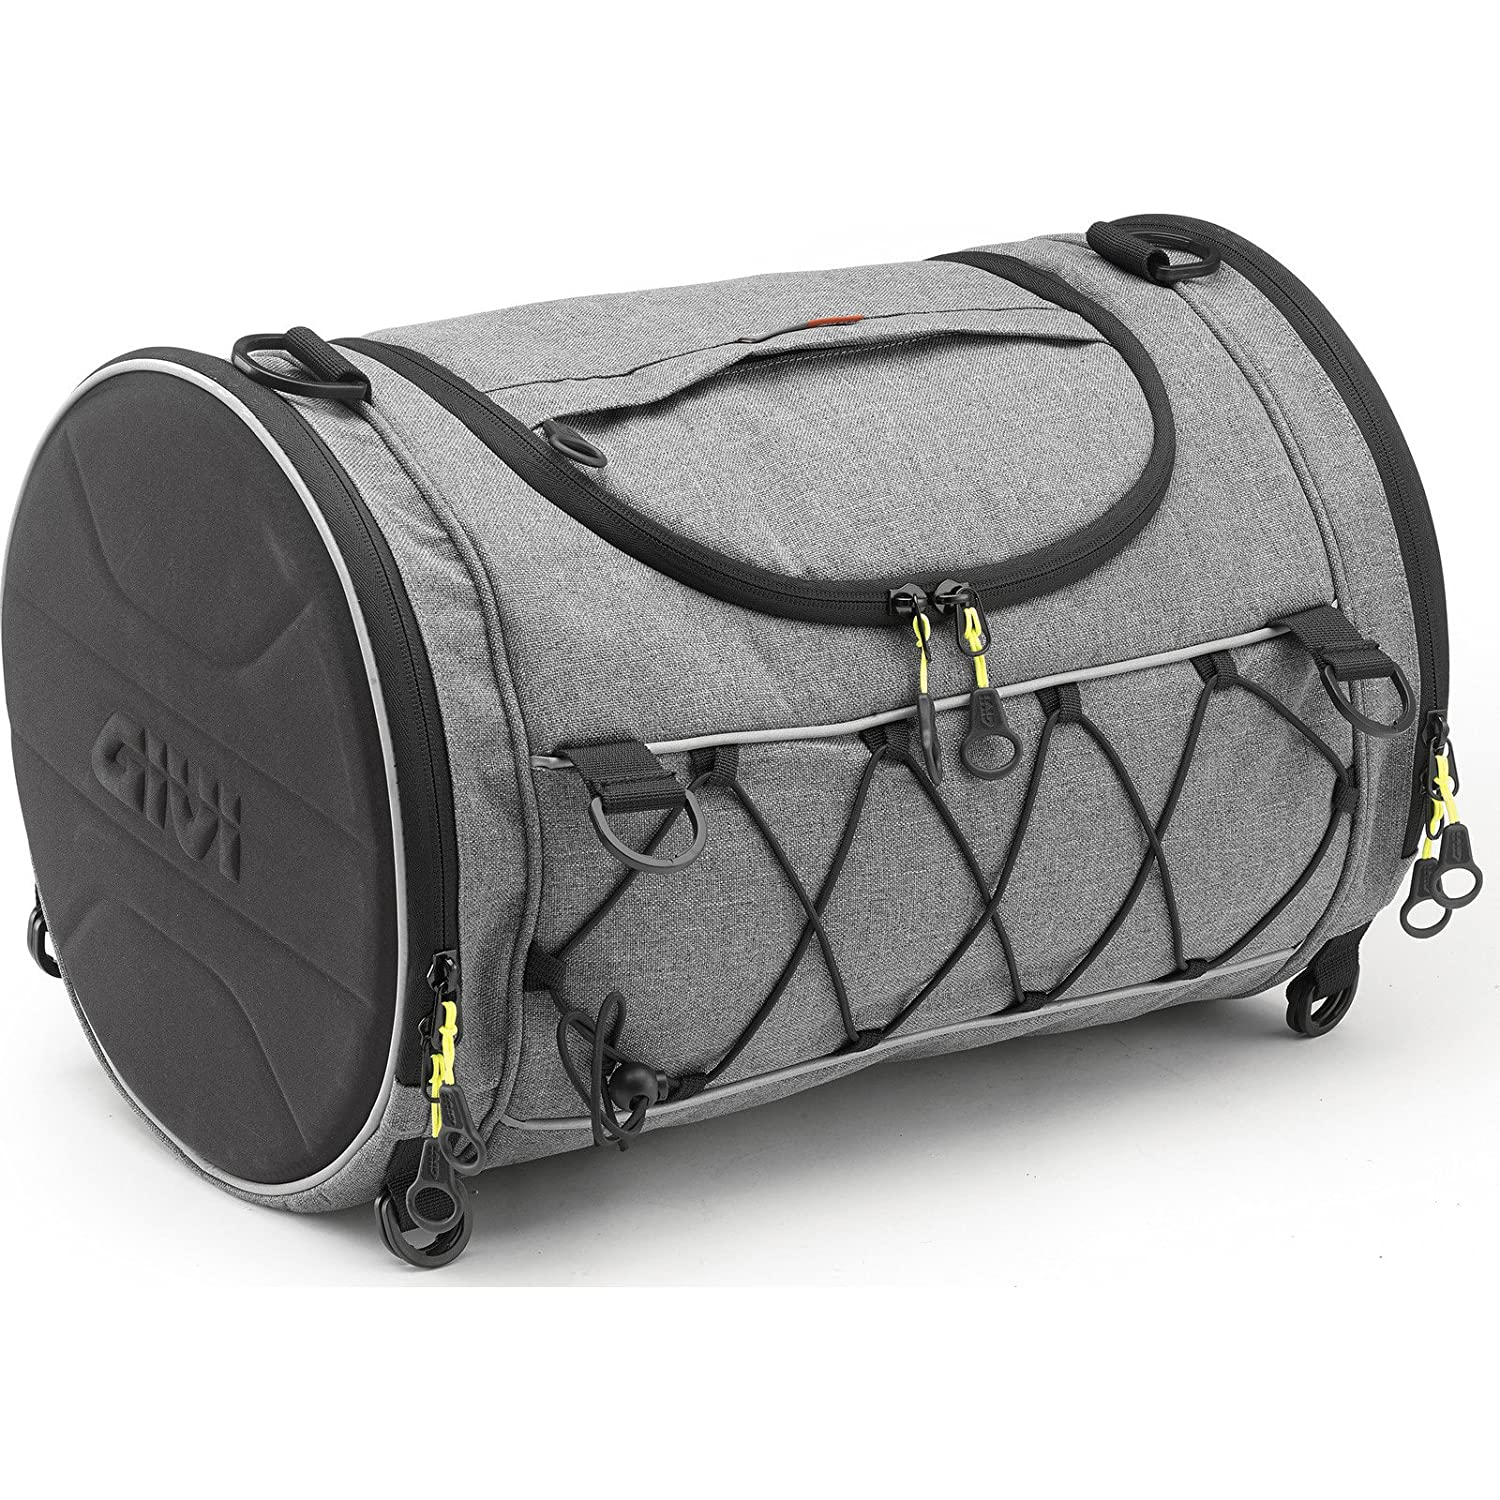 Givi EA107GR Easy Luggage Roll with Shoulder Strap GIVI Deutschland GmbH